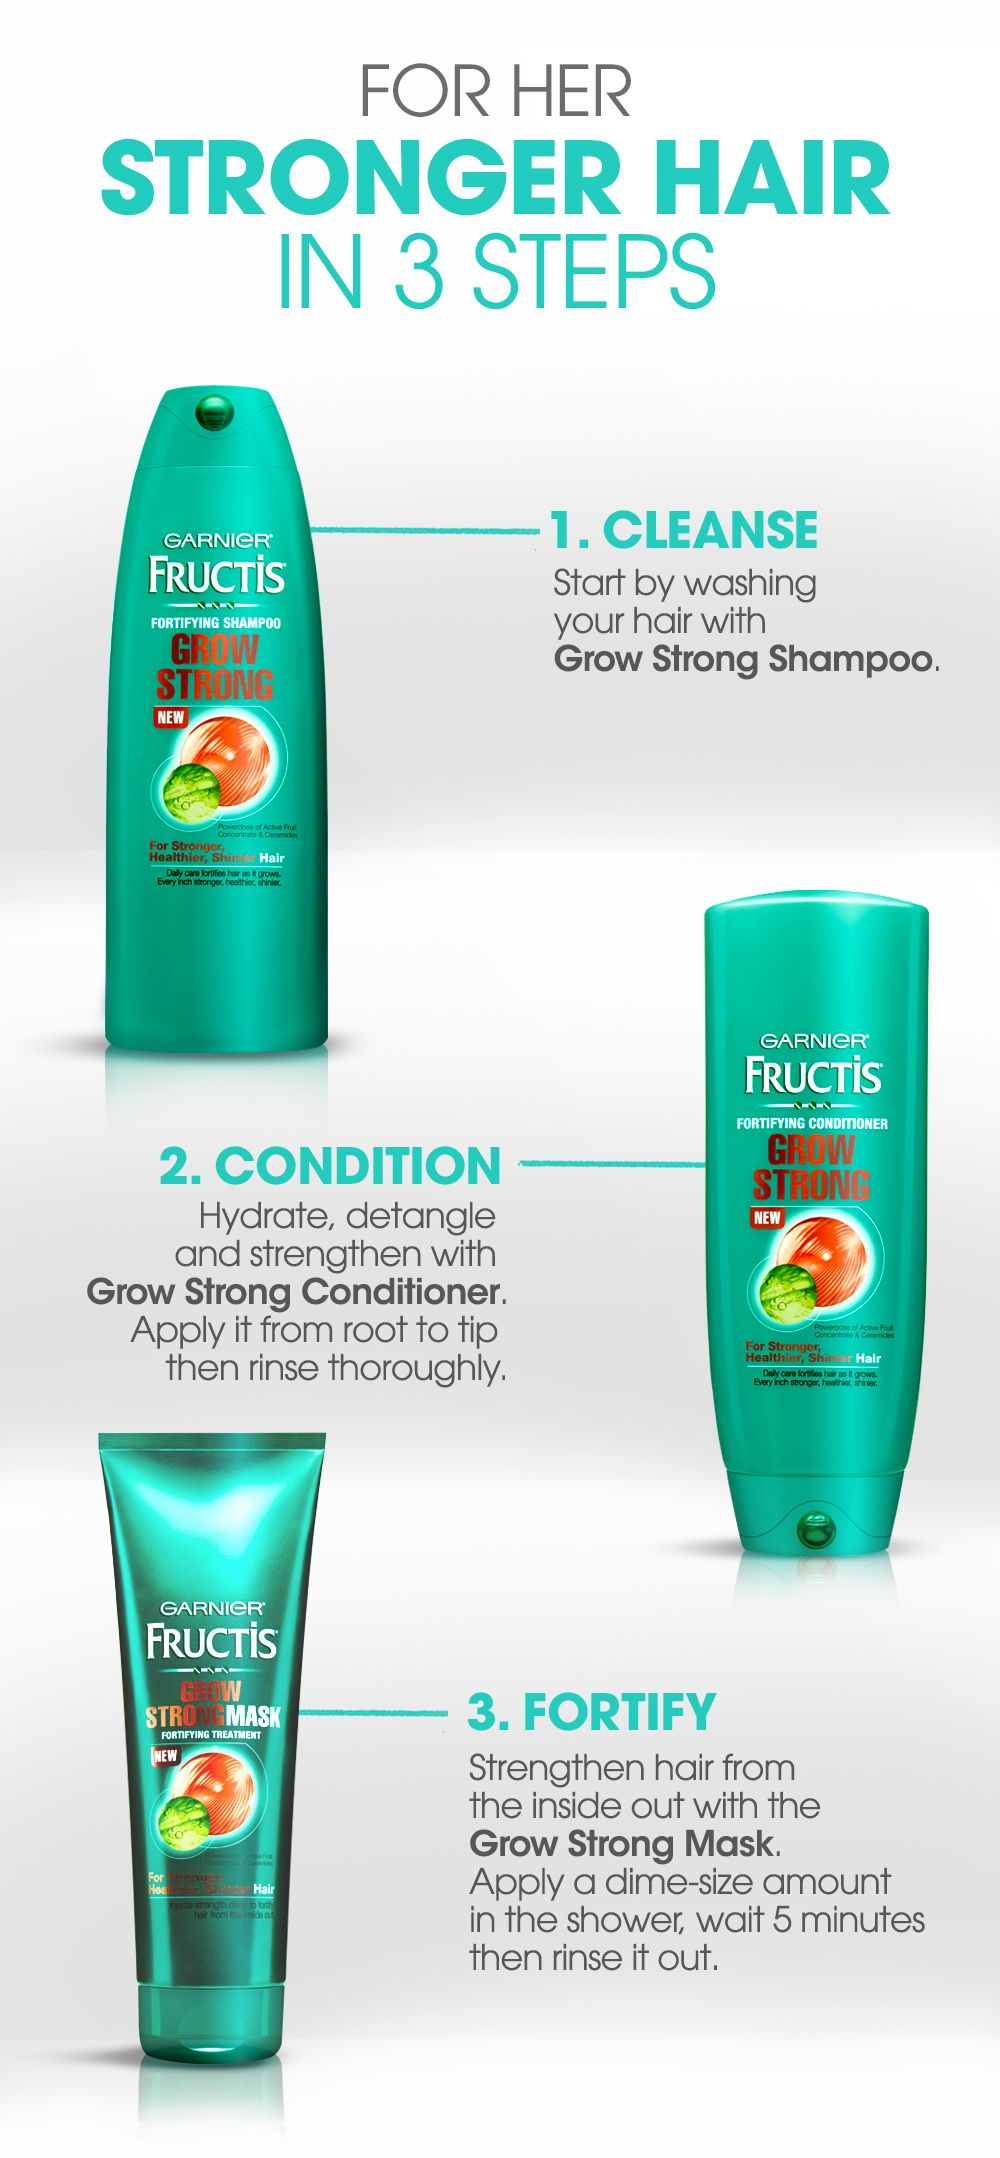 Grow Strong   For Strong, Healthy, Shiny Hair   Garnier Fructis Gallery